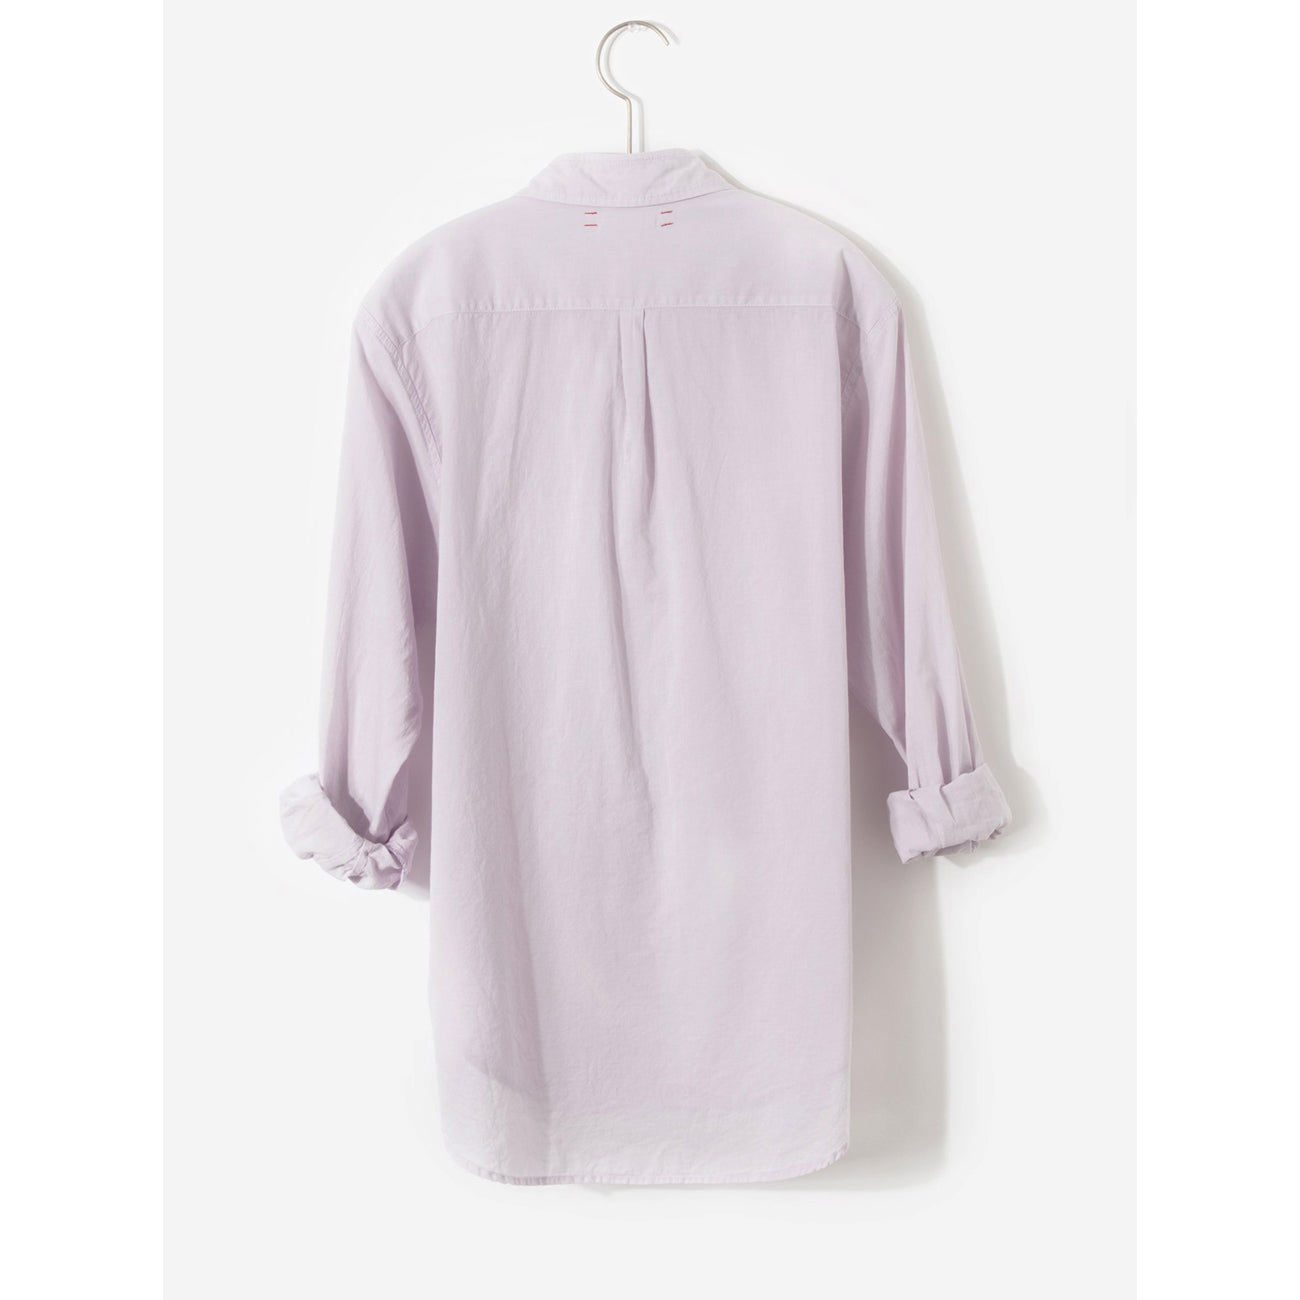 Xirena Beau Shirt in Orchid Haze